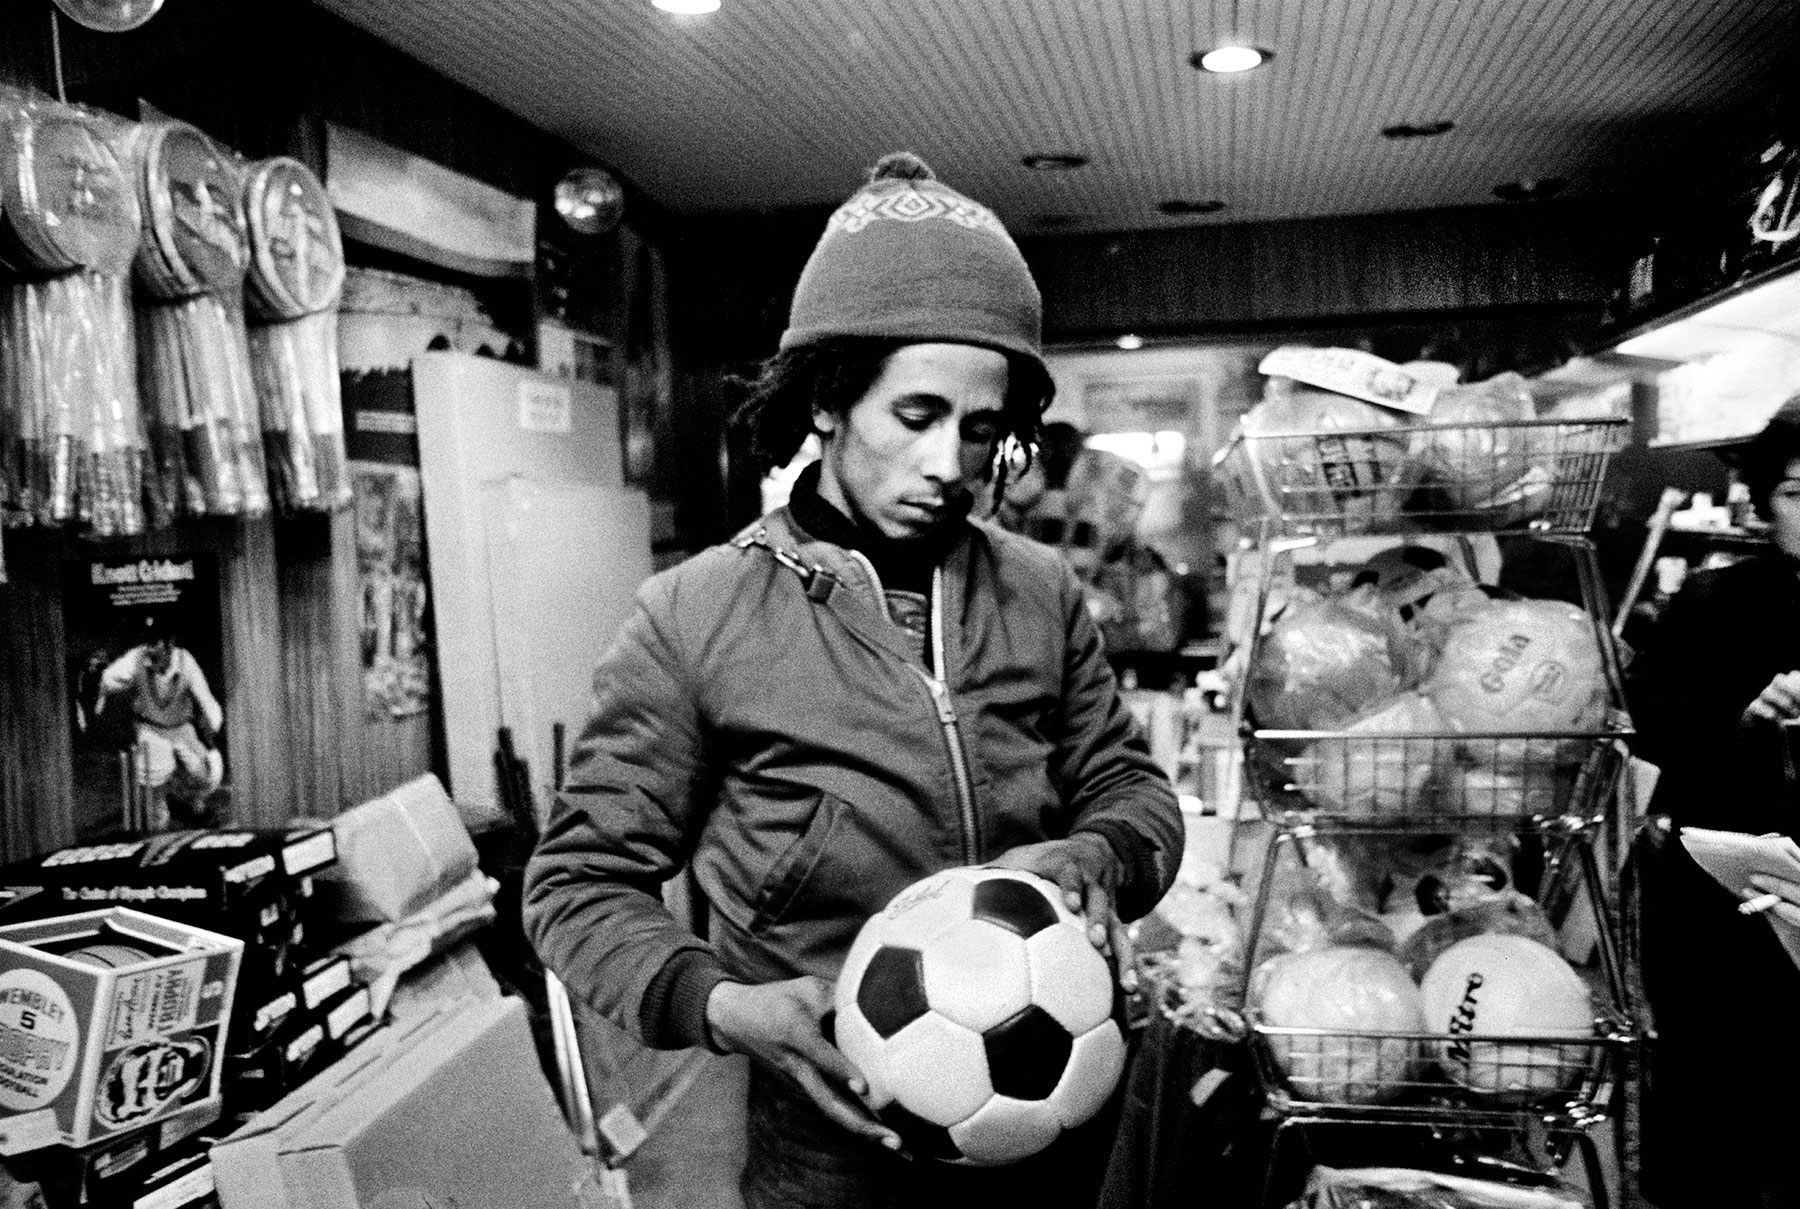 Bob Marley: The Stories Behind 17 Rare and Unseen Images